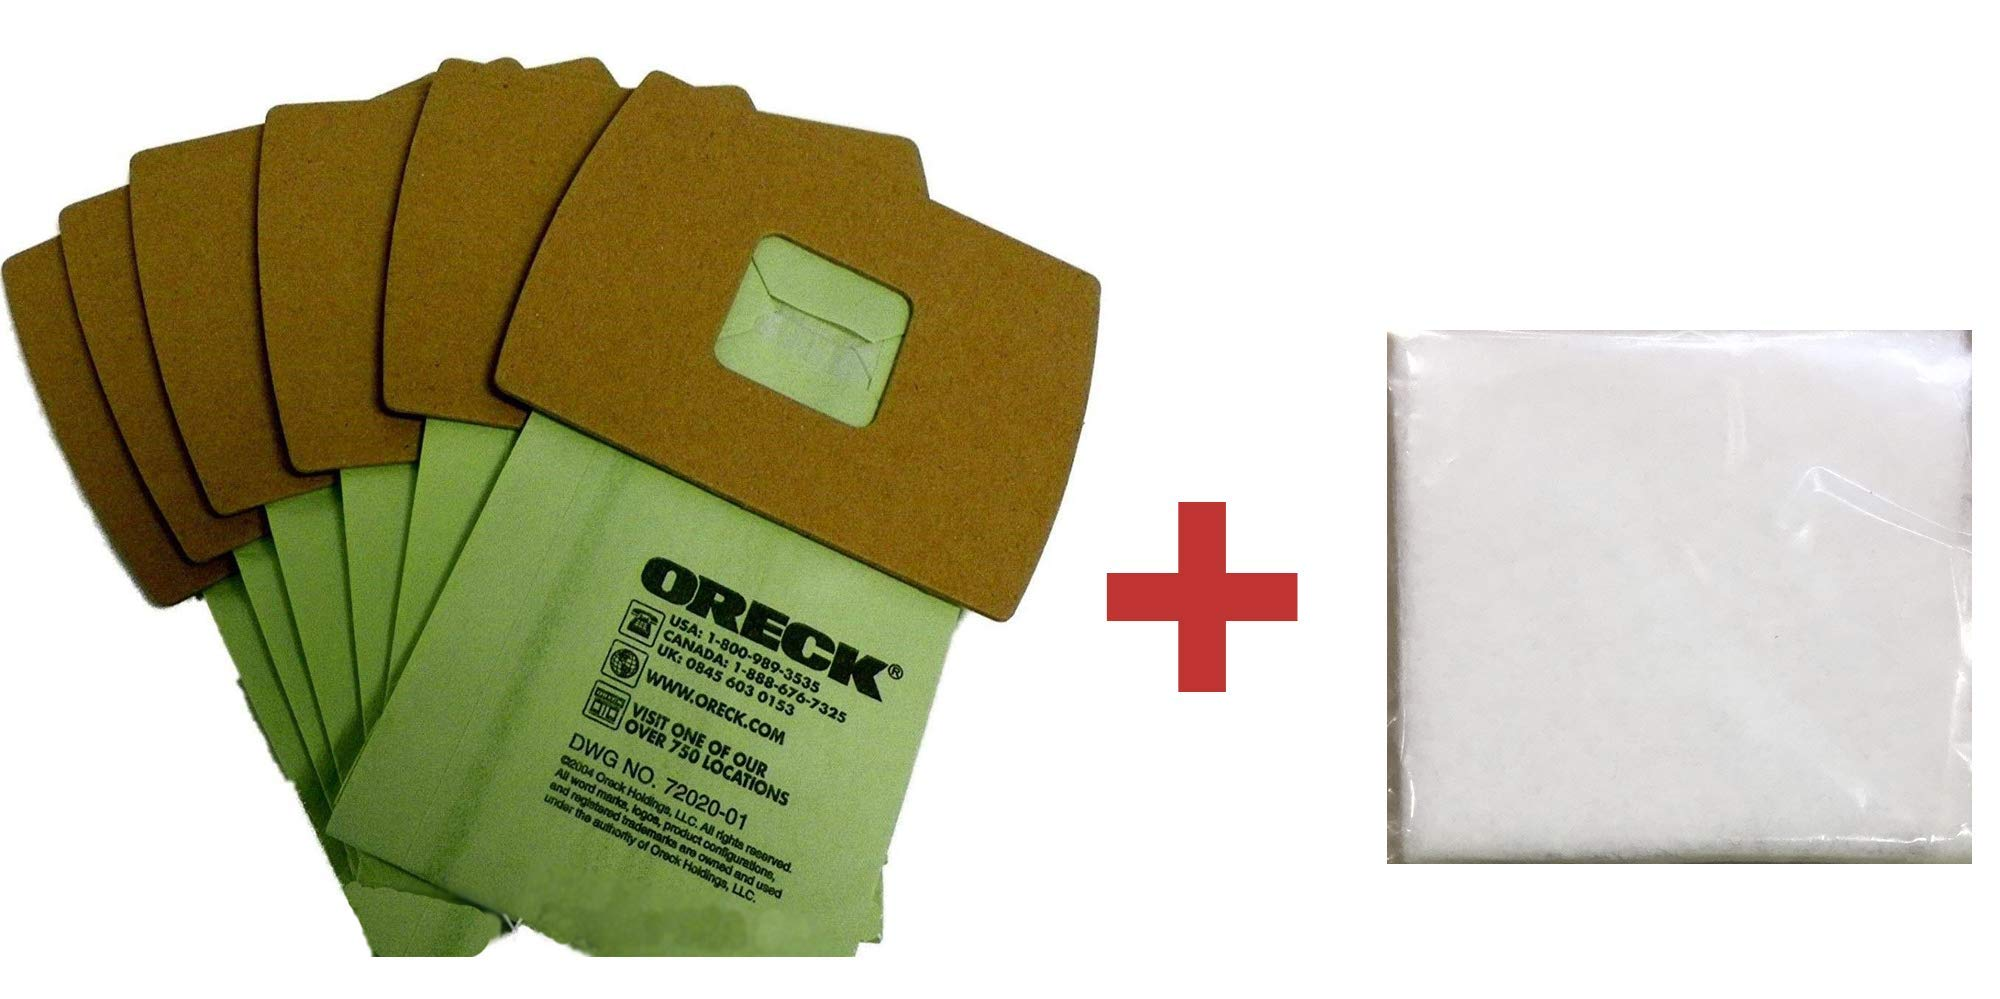 Genuine Oreck XL Buster B Canister Vacuum Bags PKBB12DW Housekeeper Bag 6 Pack